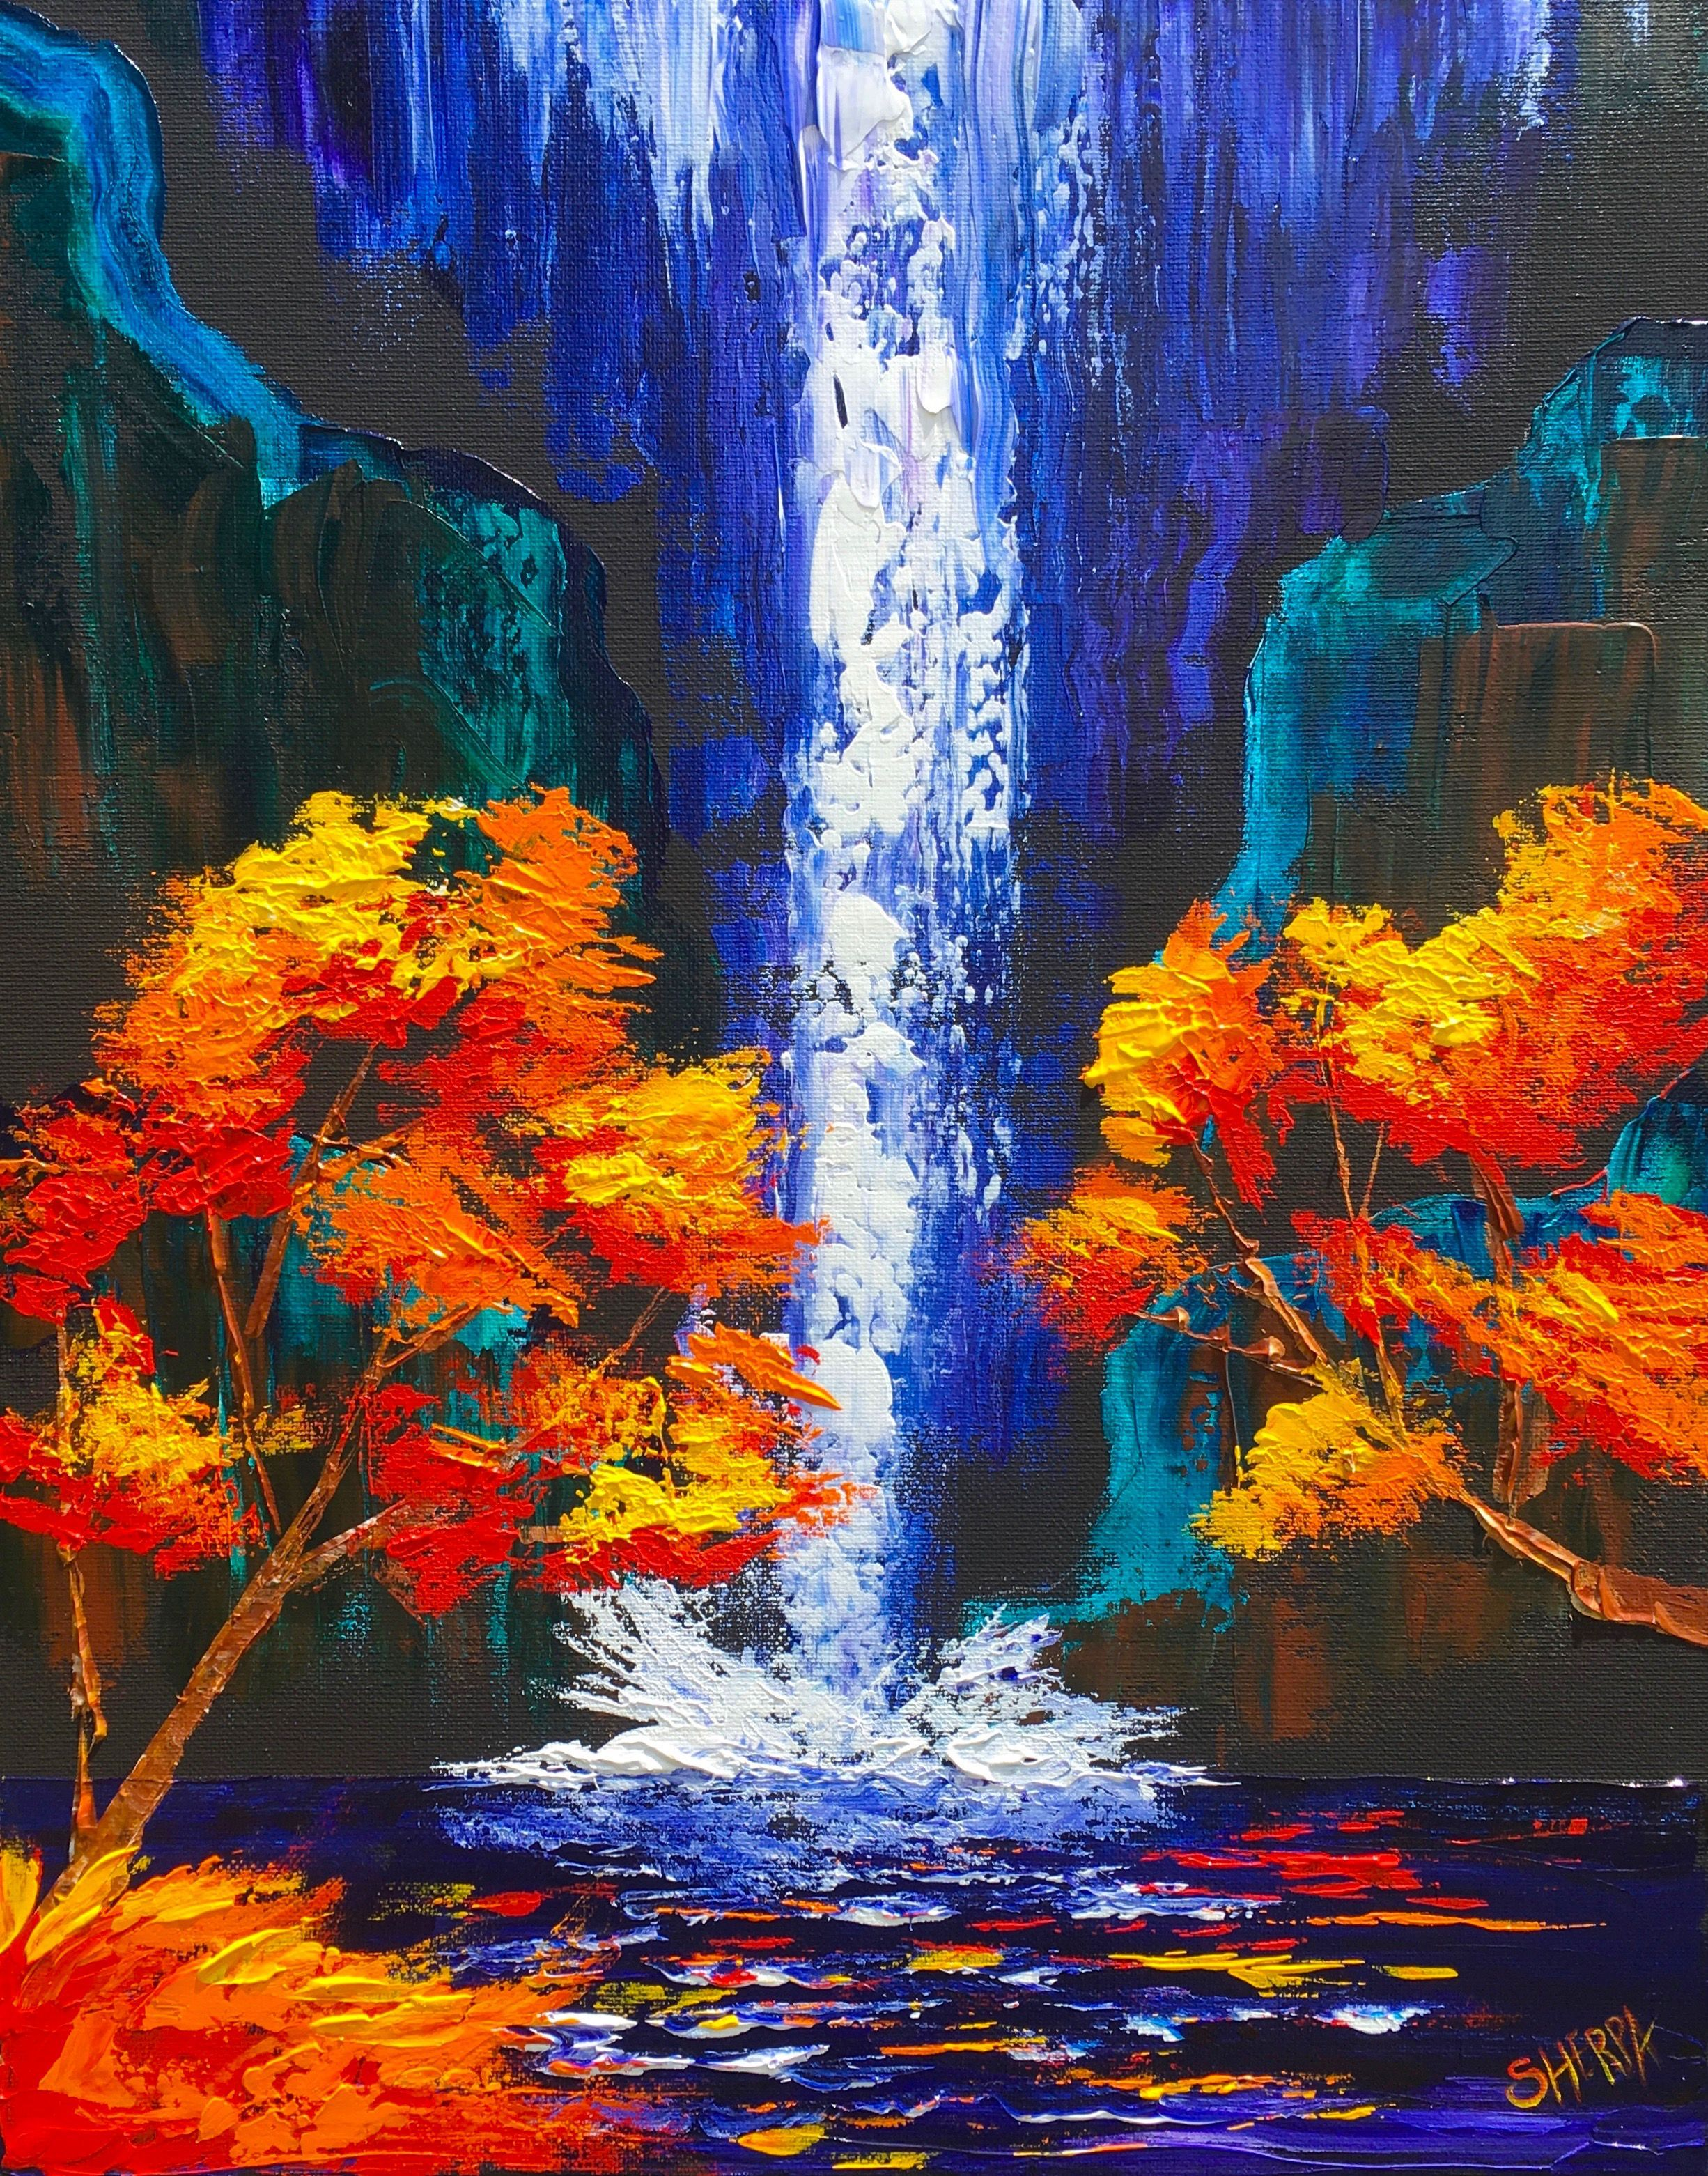 Easy Pallet Knife Of A Waterfall Landscape With Fall Trees In Acrylic On Canvas Fully Guided St Waterfall Paintings Landscape Paintings Acrylic The Art Sherpa